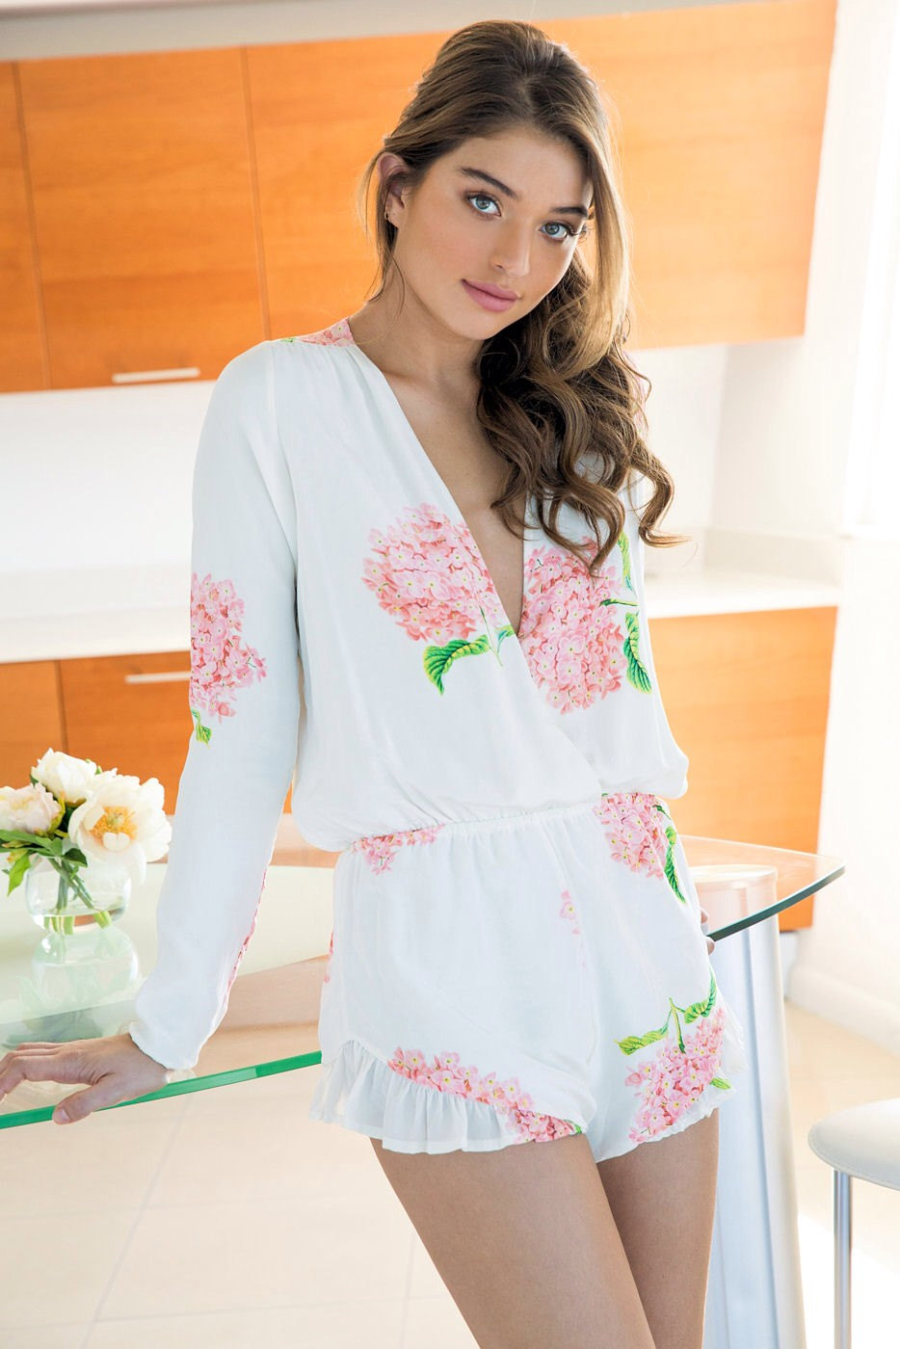 Floral Romper - Petite Girl Styling Dos and Don'ts // NotJessFashion.com